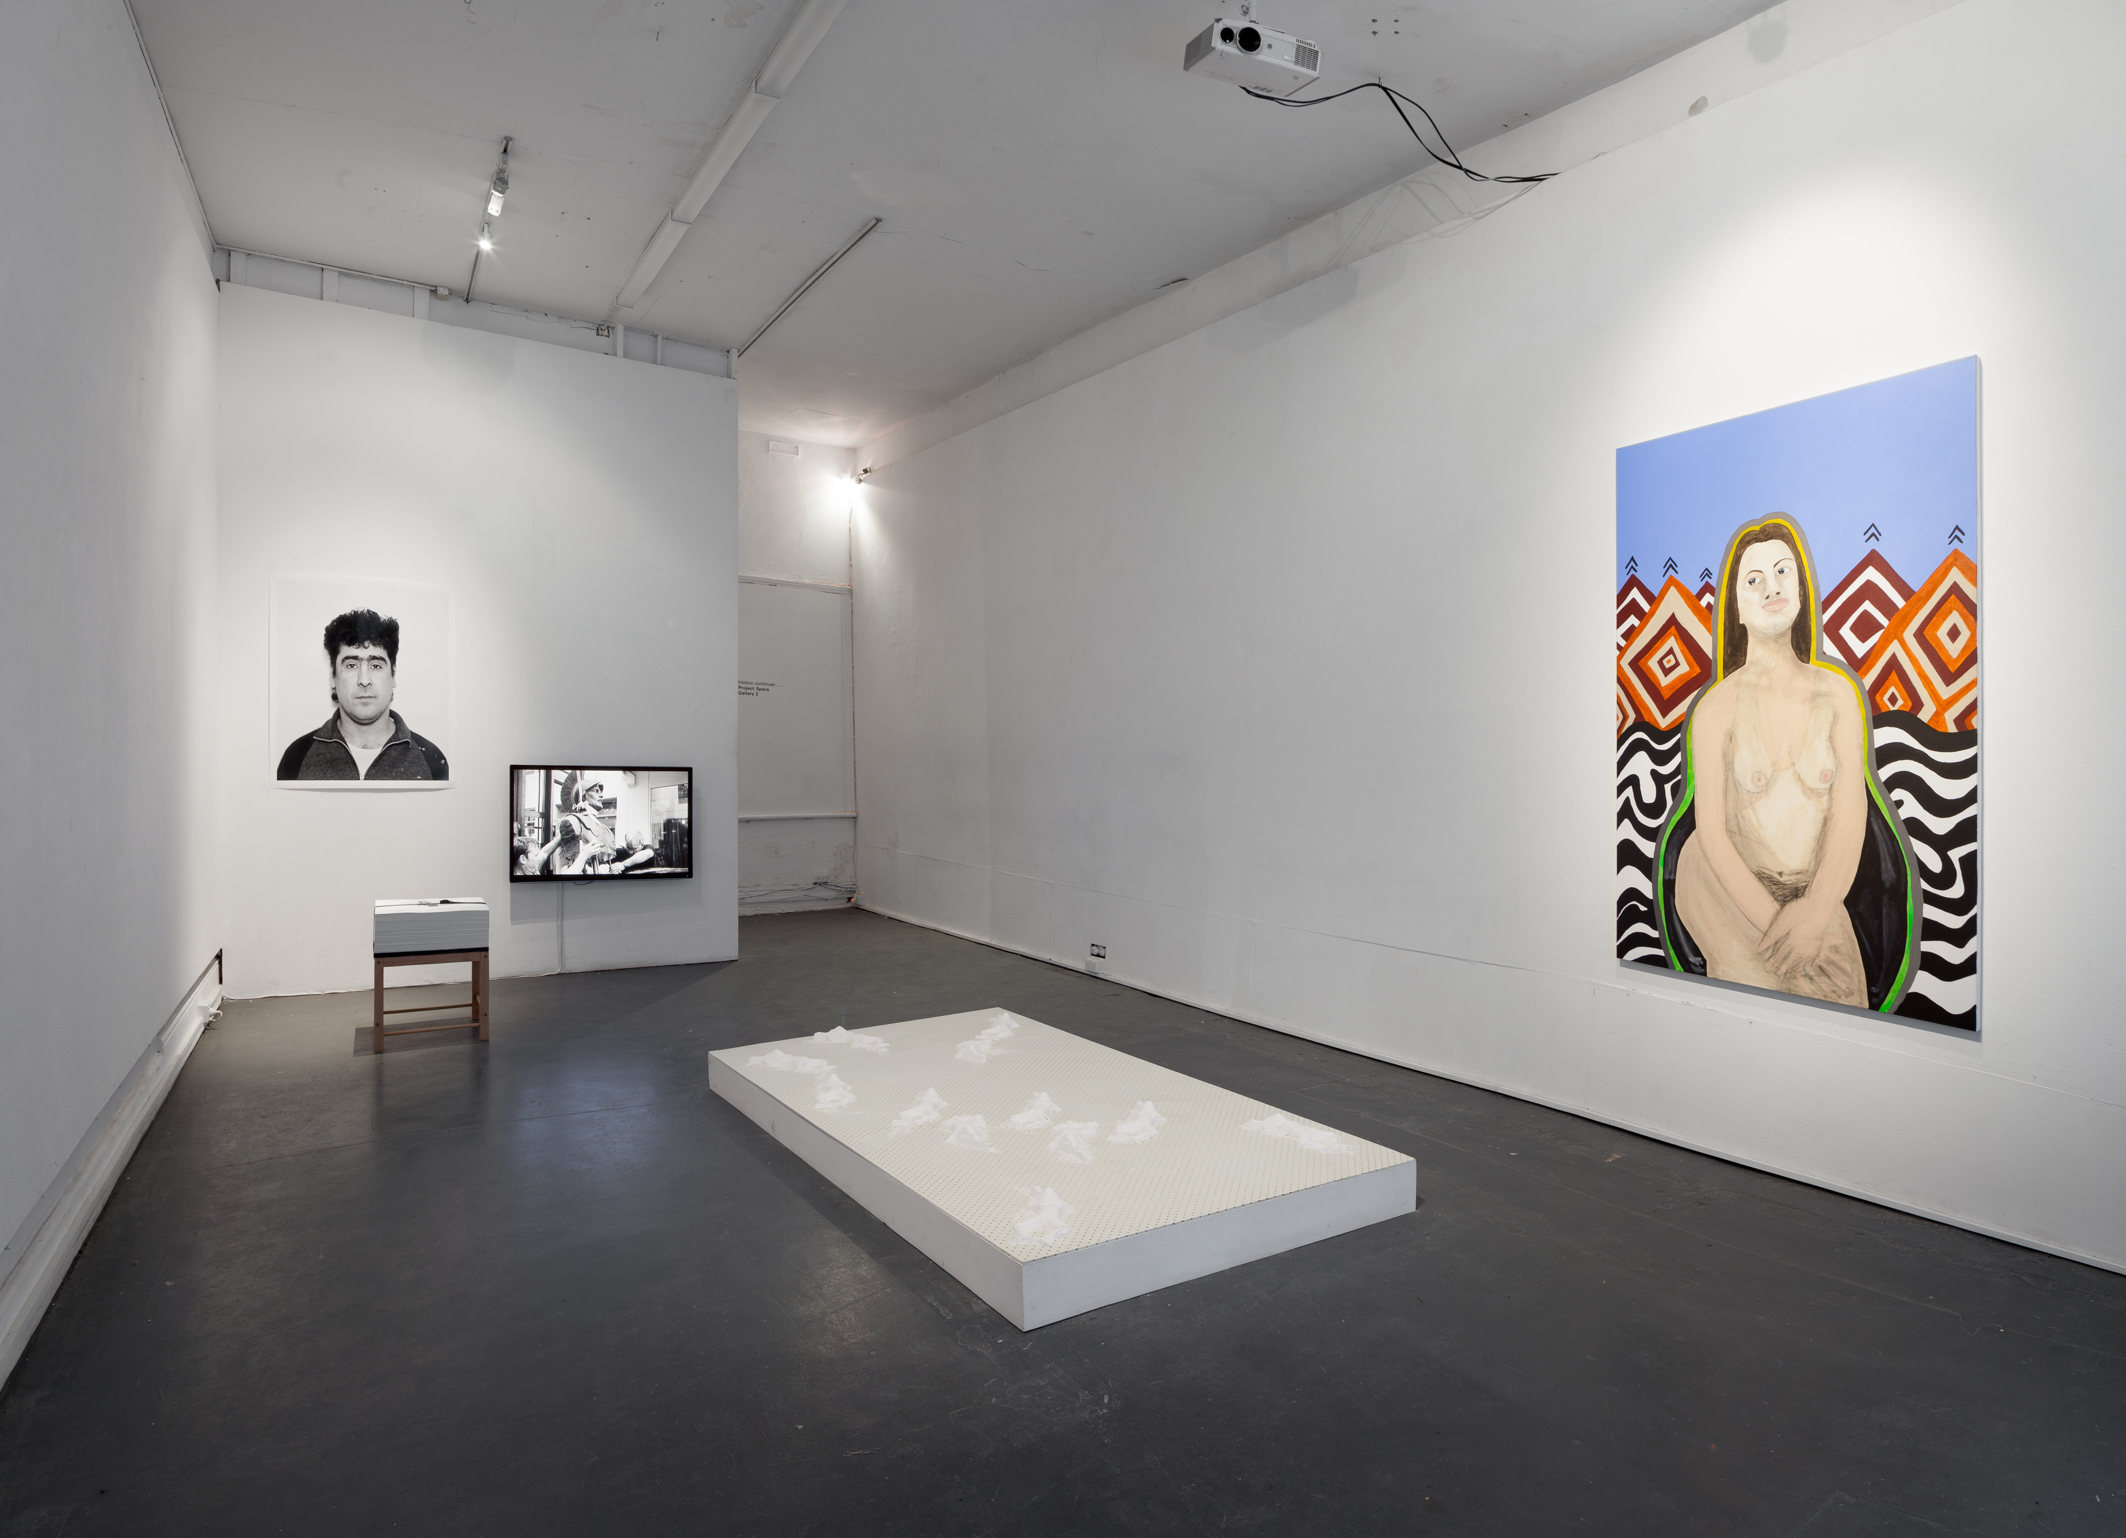 Installation shot: (L-R) Nikos Pantazopoulos, We were here, 2014; Julie Shiels, Things fall apart, 2013; Steaphan Paton, Poor white fellas, 2014. Photo Credit: Christo Crocker.